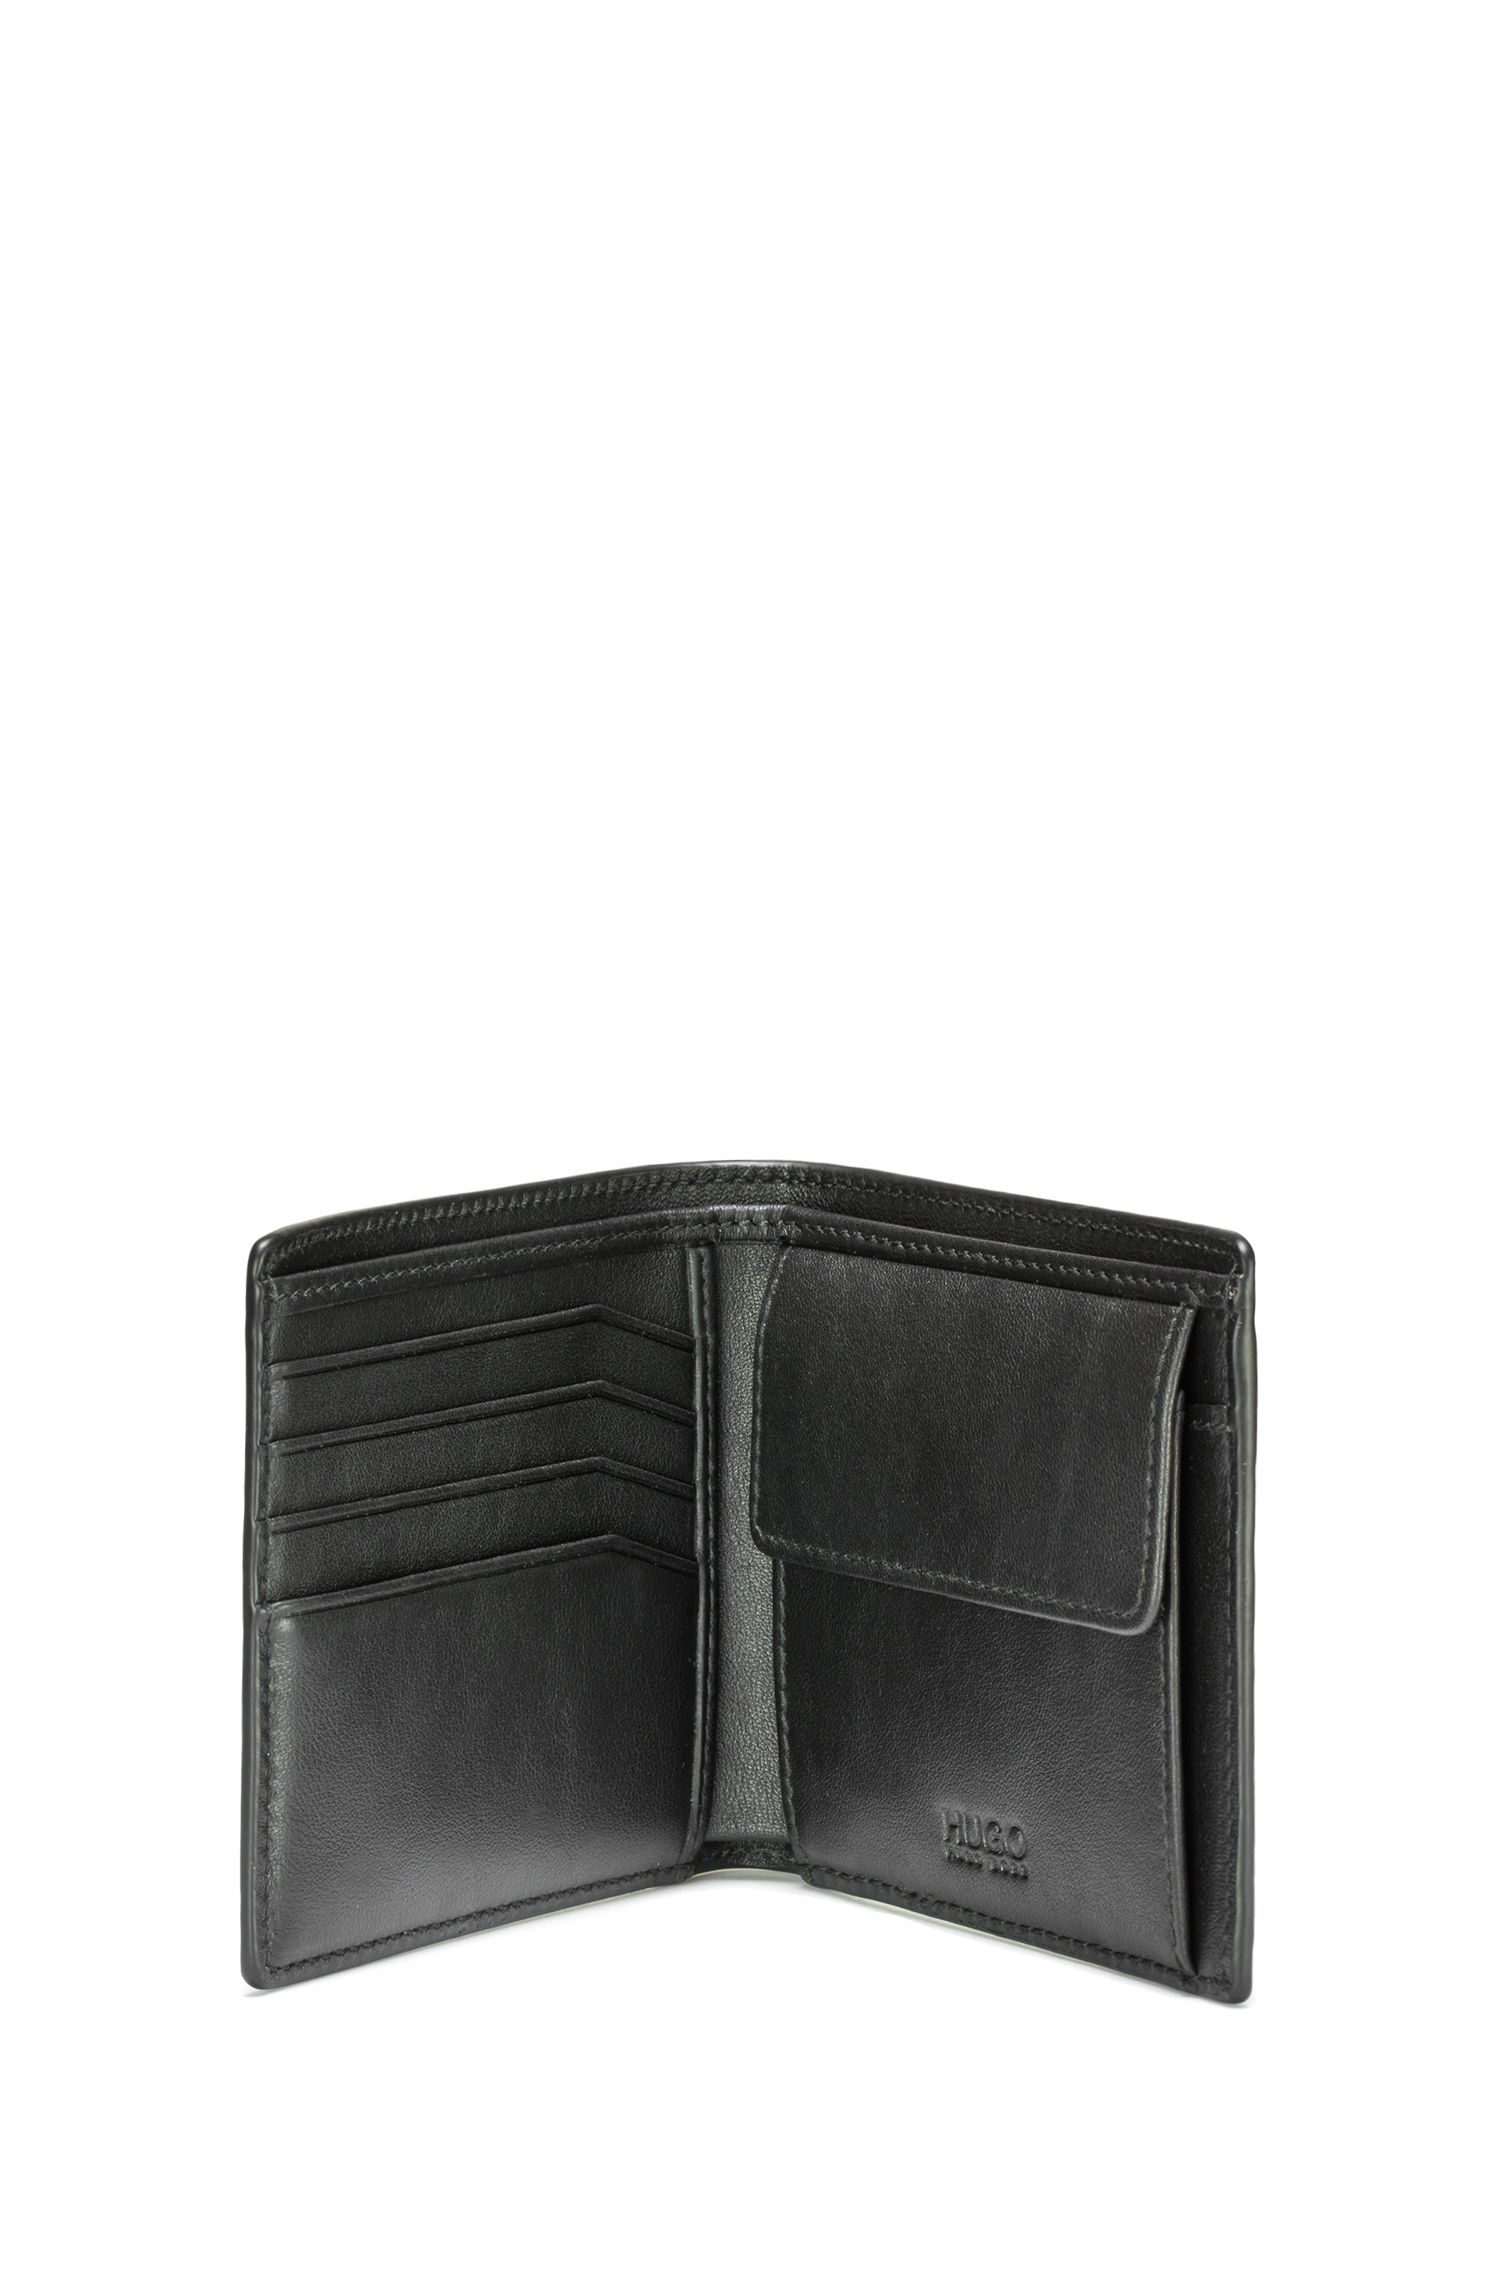 Reverse-logo billfold wallet in leather with coin pocket, Black